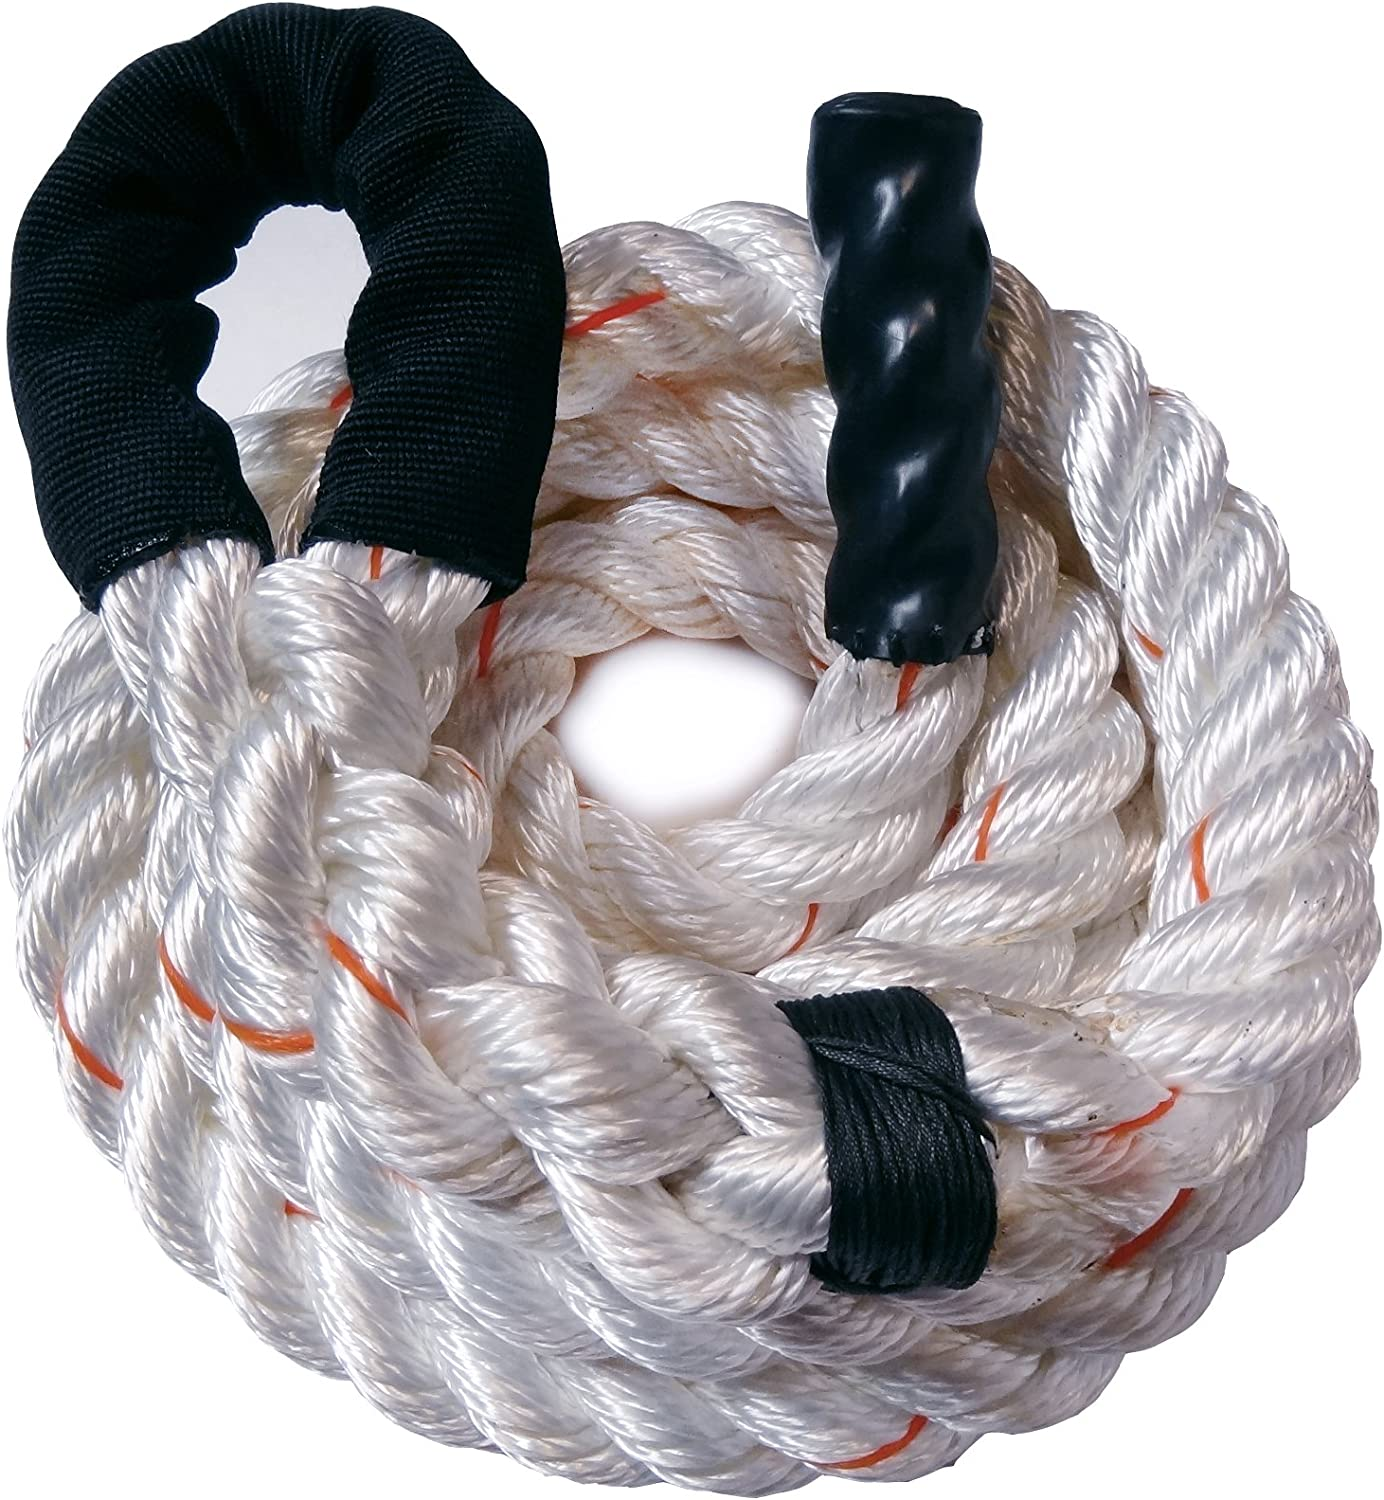 Omaha Mall Opening large release sale The550CordShop White PolyDac Climbing Rope